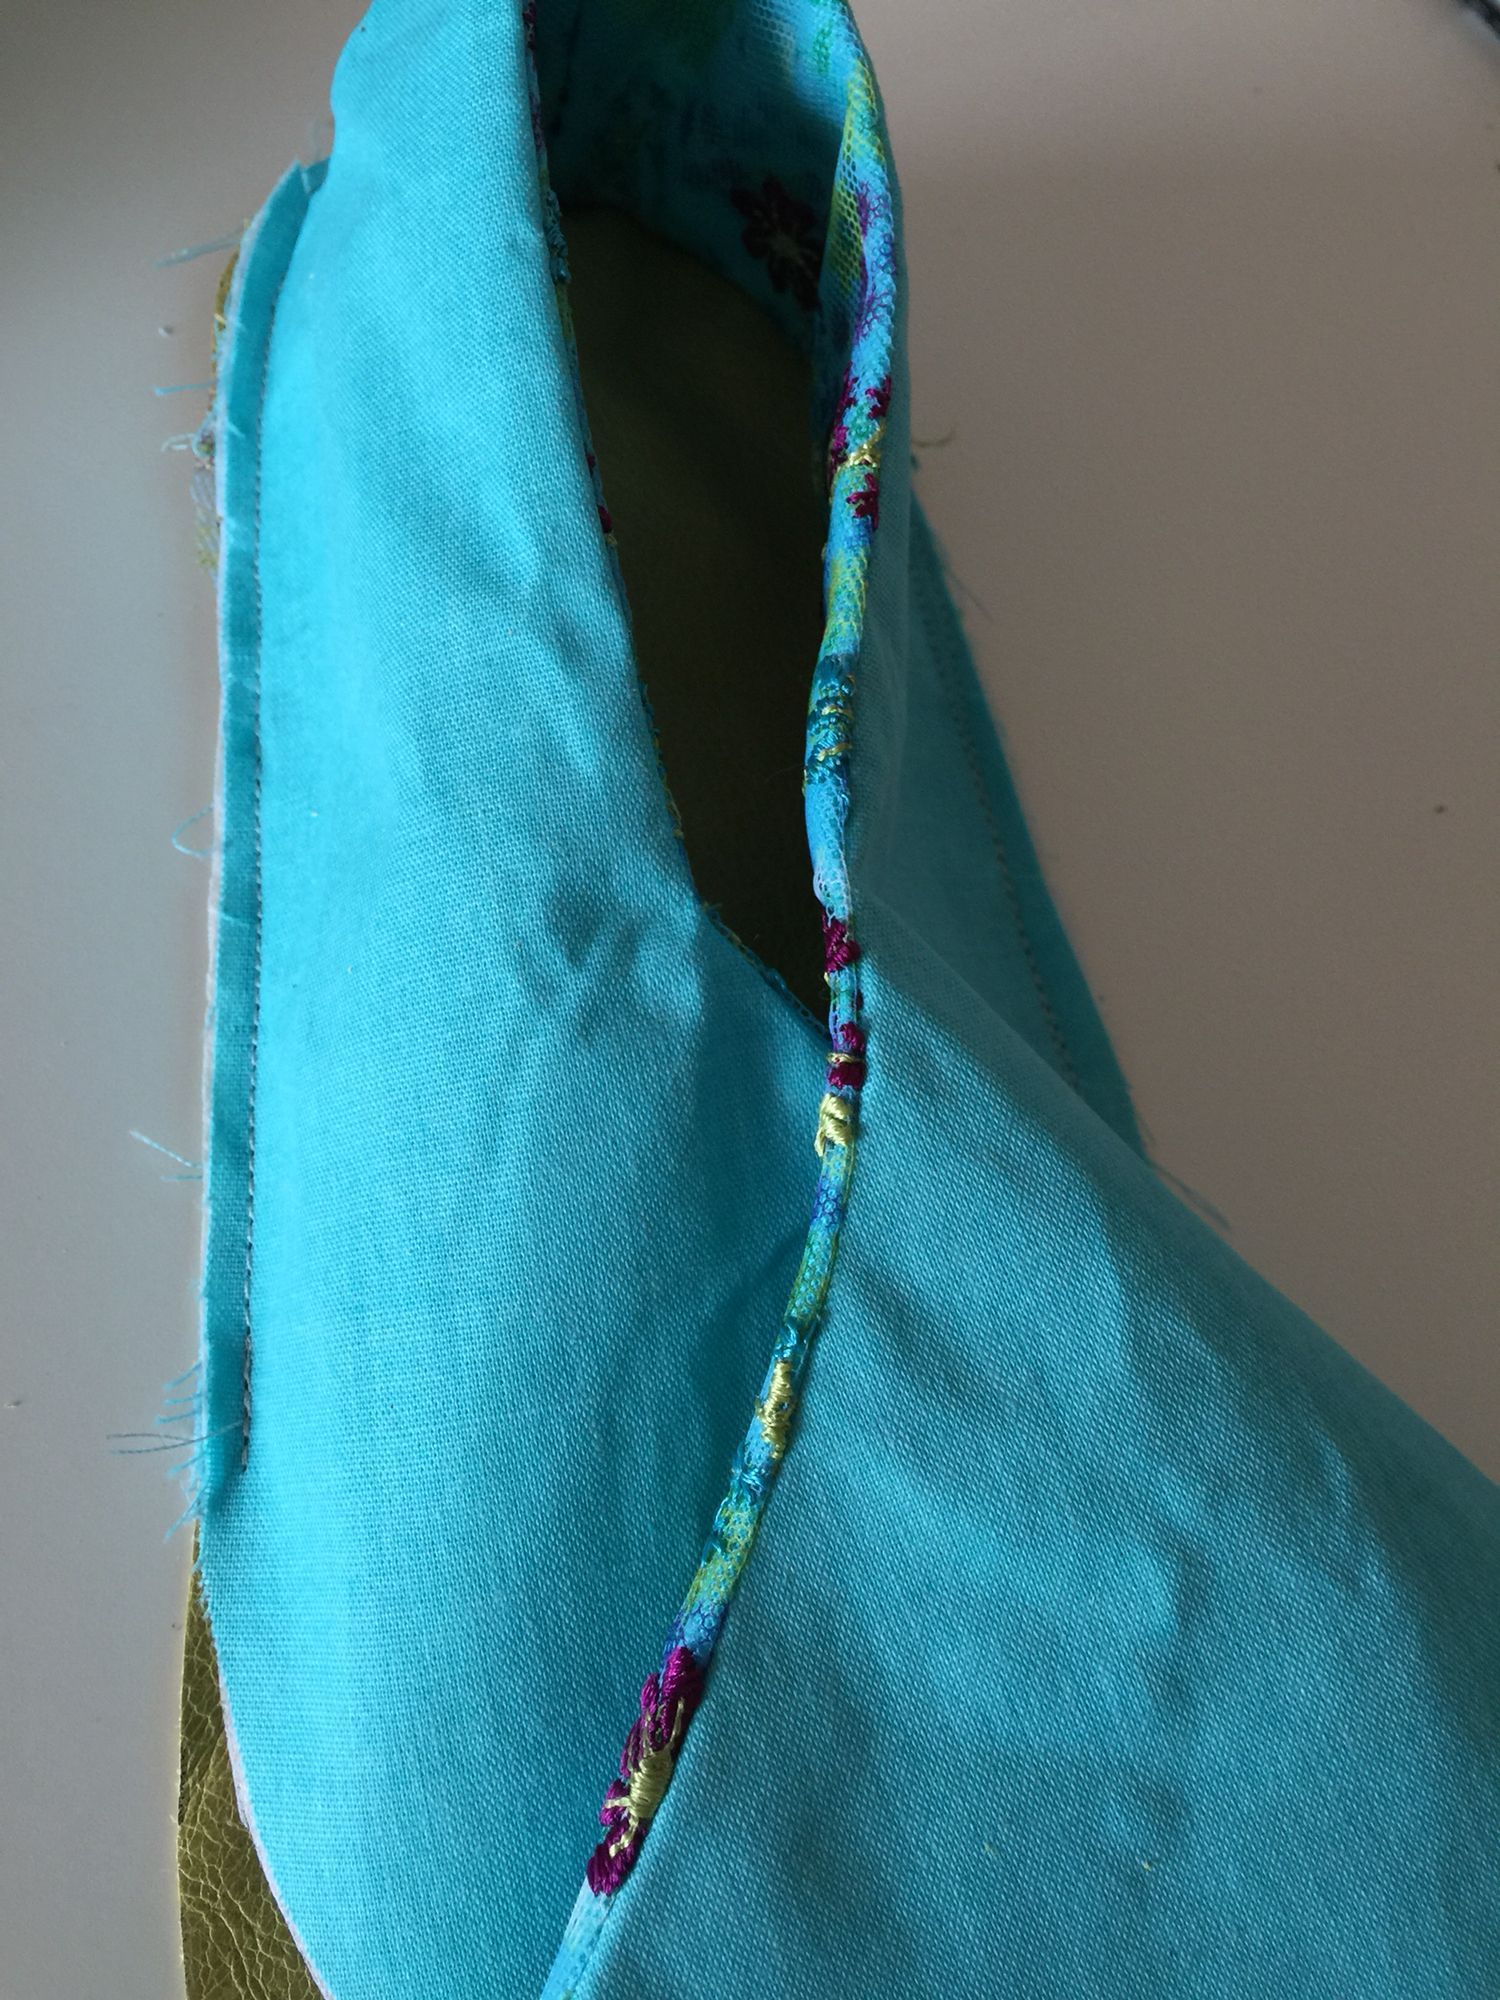 Sew from side around back to other side leaving front free